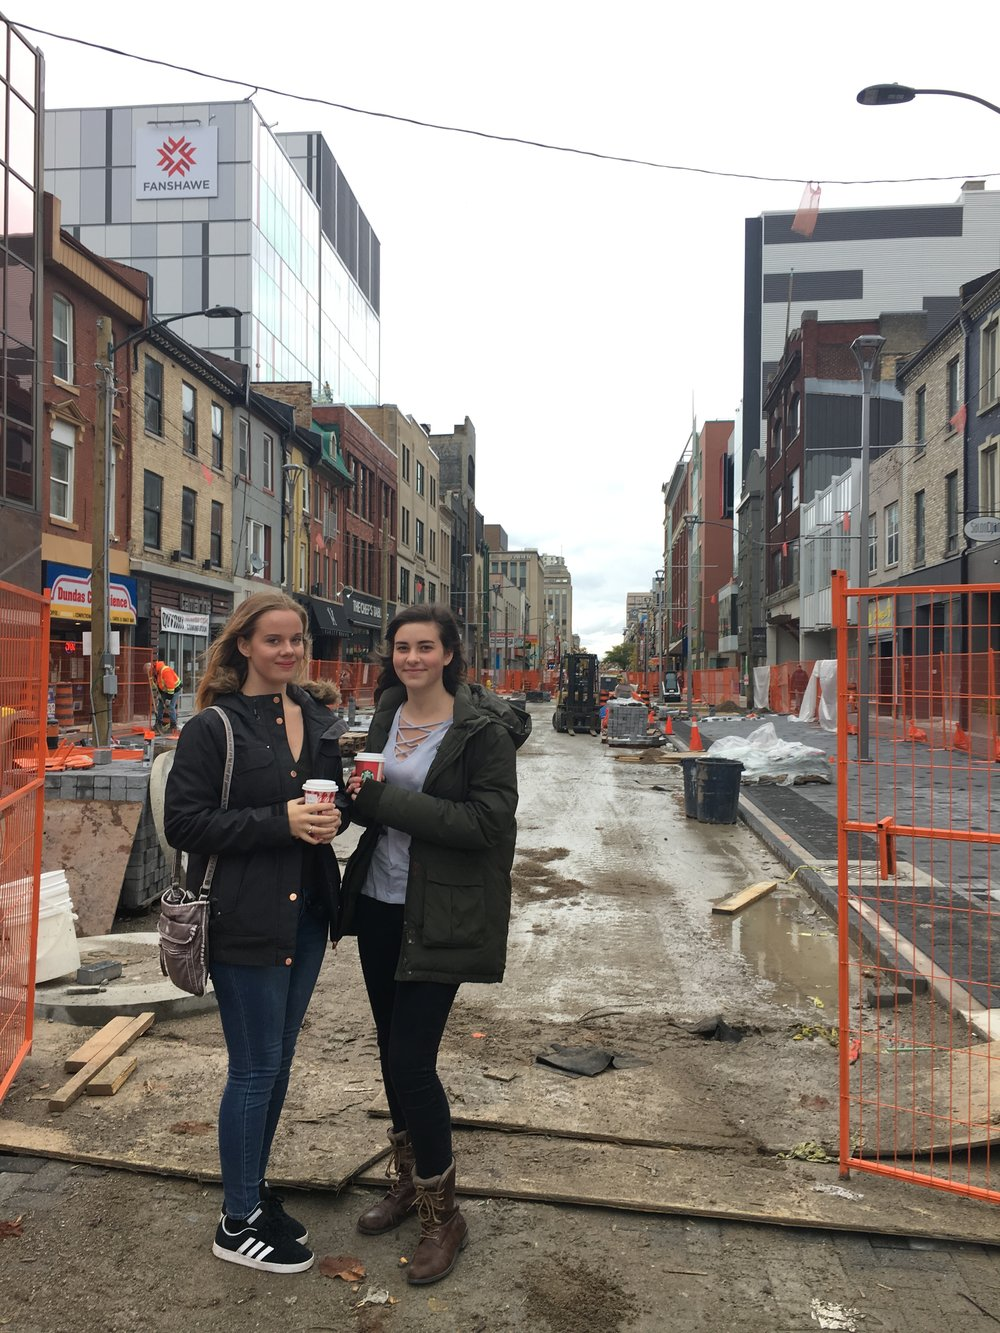 Jenn & Emily checked out the progress on Dundas Street recently in London. We love the move to create 'Dundas Place' in the downtown core!